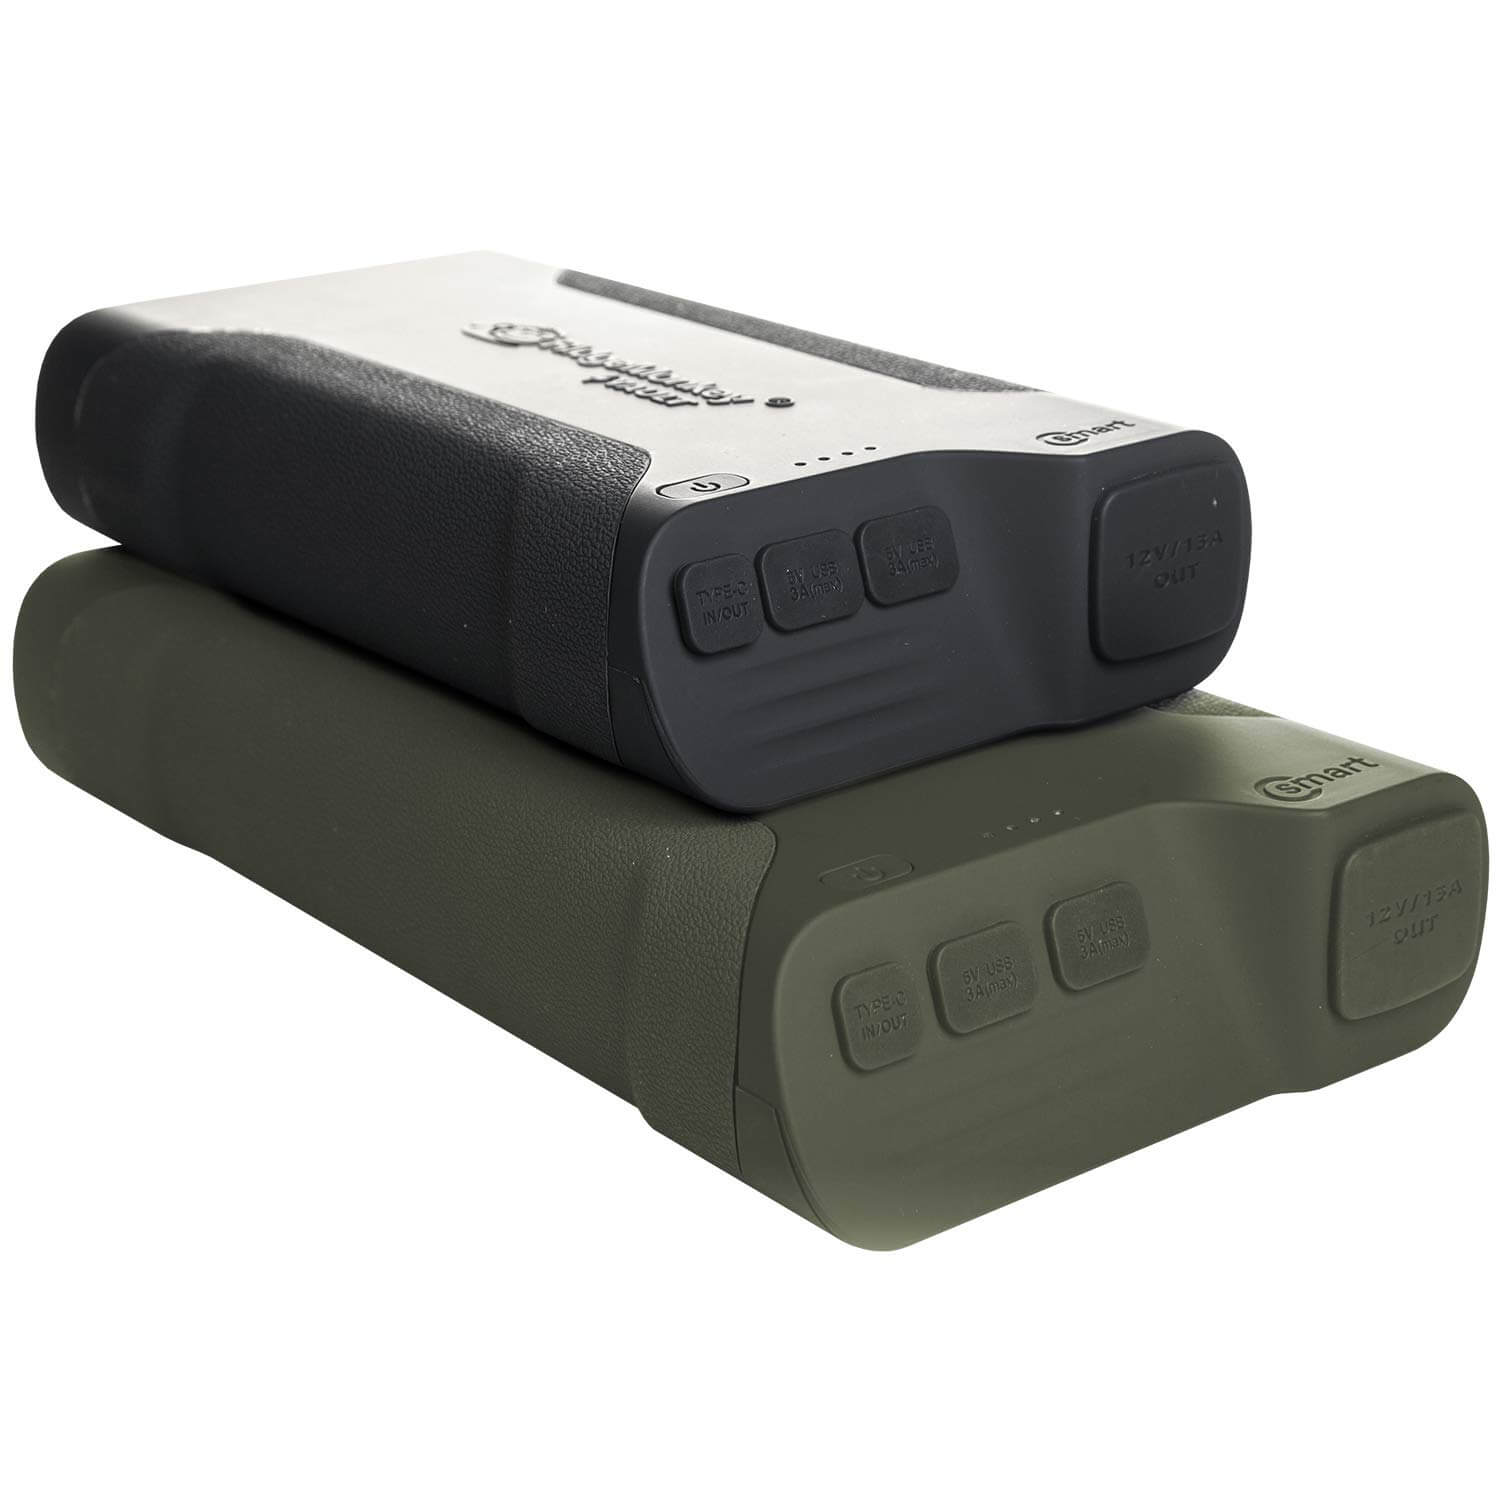 Ridgemonkey C-Smart power pack